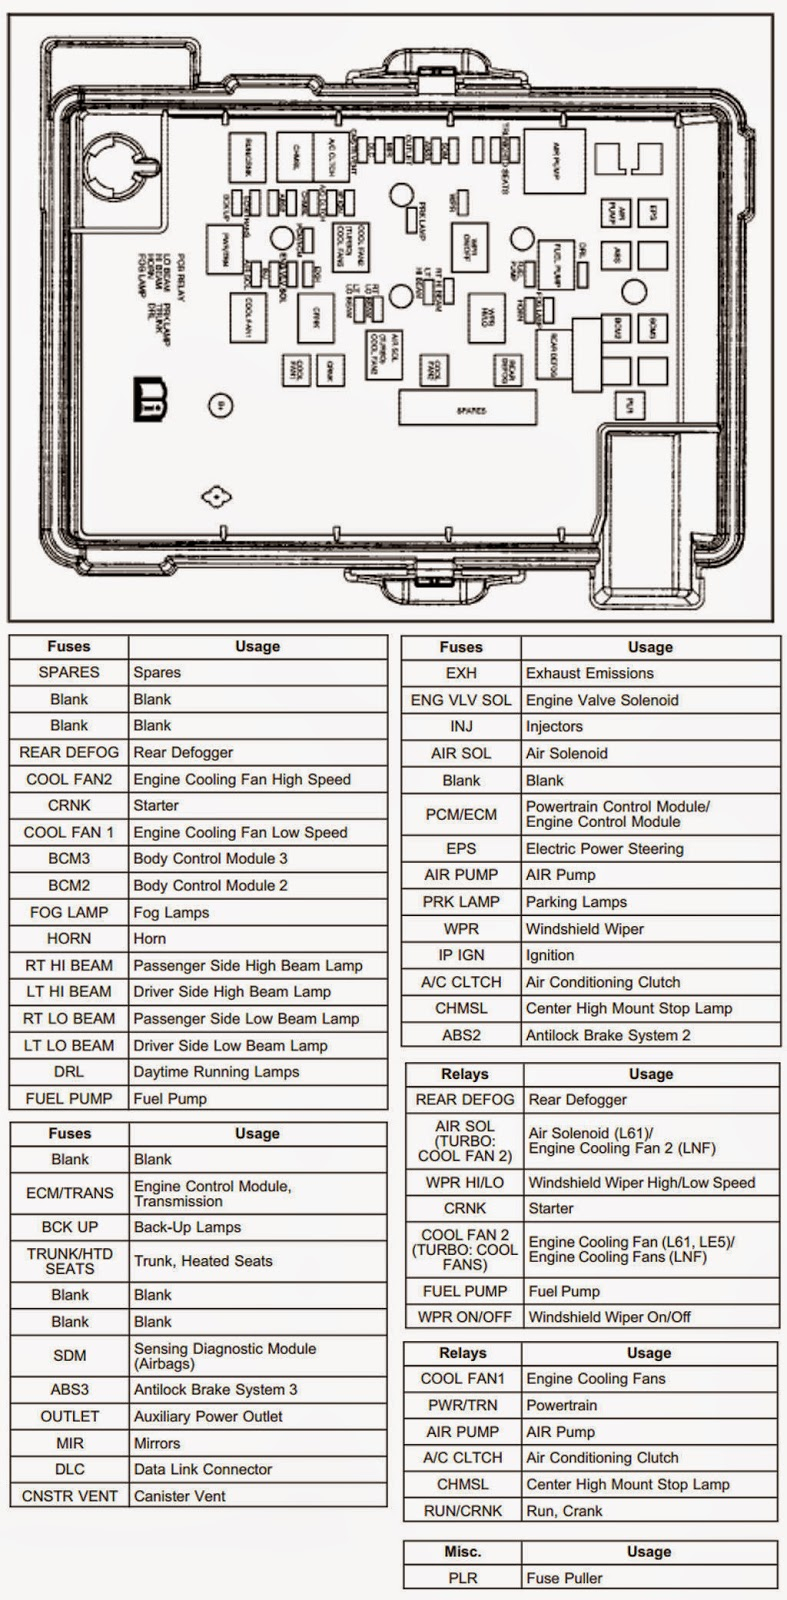 2010 Pt Cruiser Fuse Box Diagram | Wiring Library - 2006 Pt Cruiser Cooling Fan Wiring Diagram